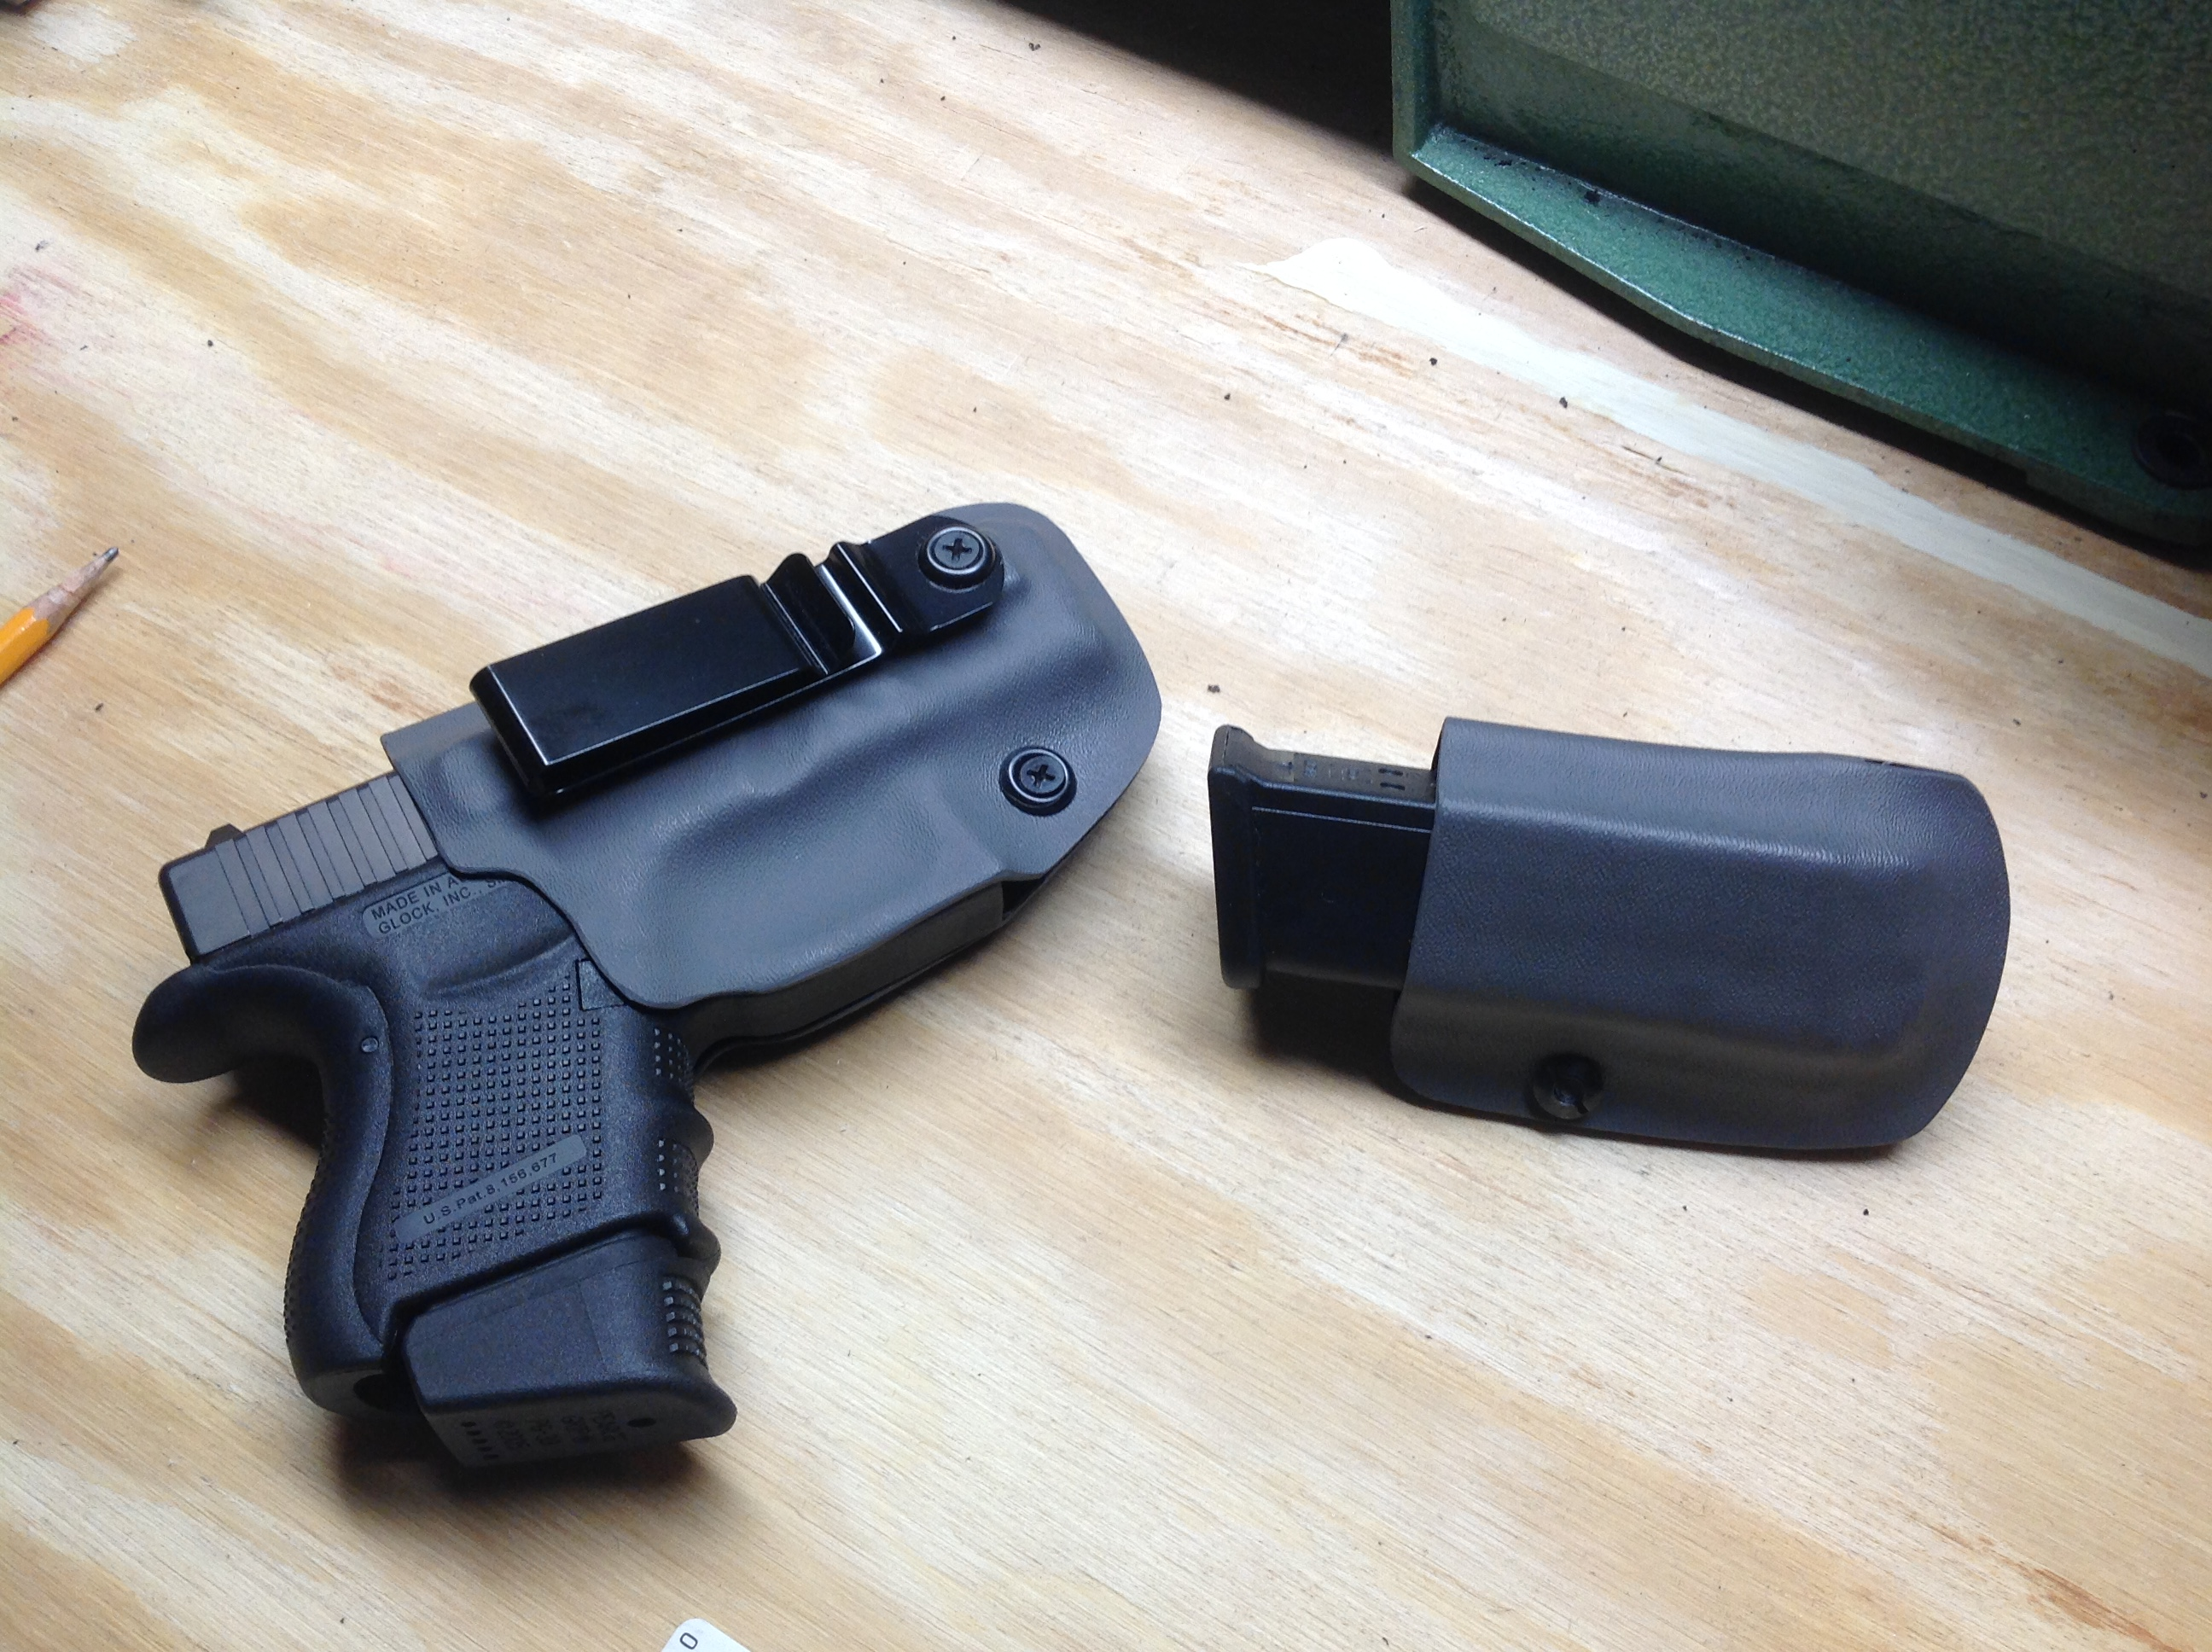 New Model Kydex Holsters From 12 Gauge Holsters